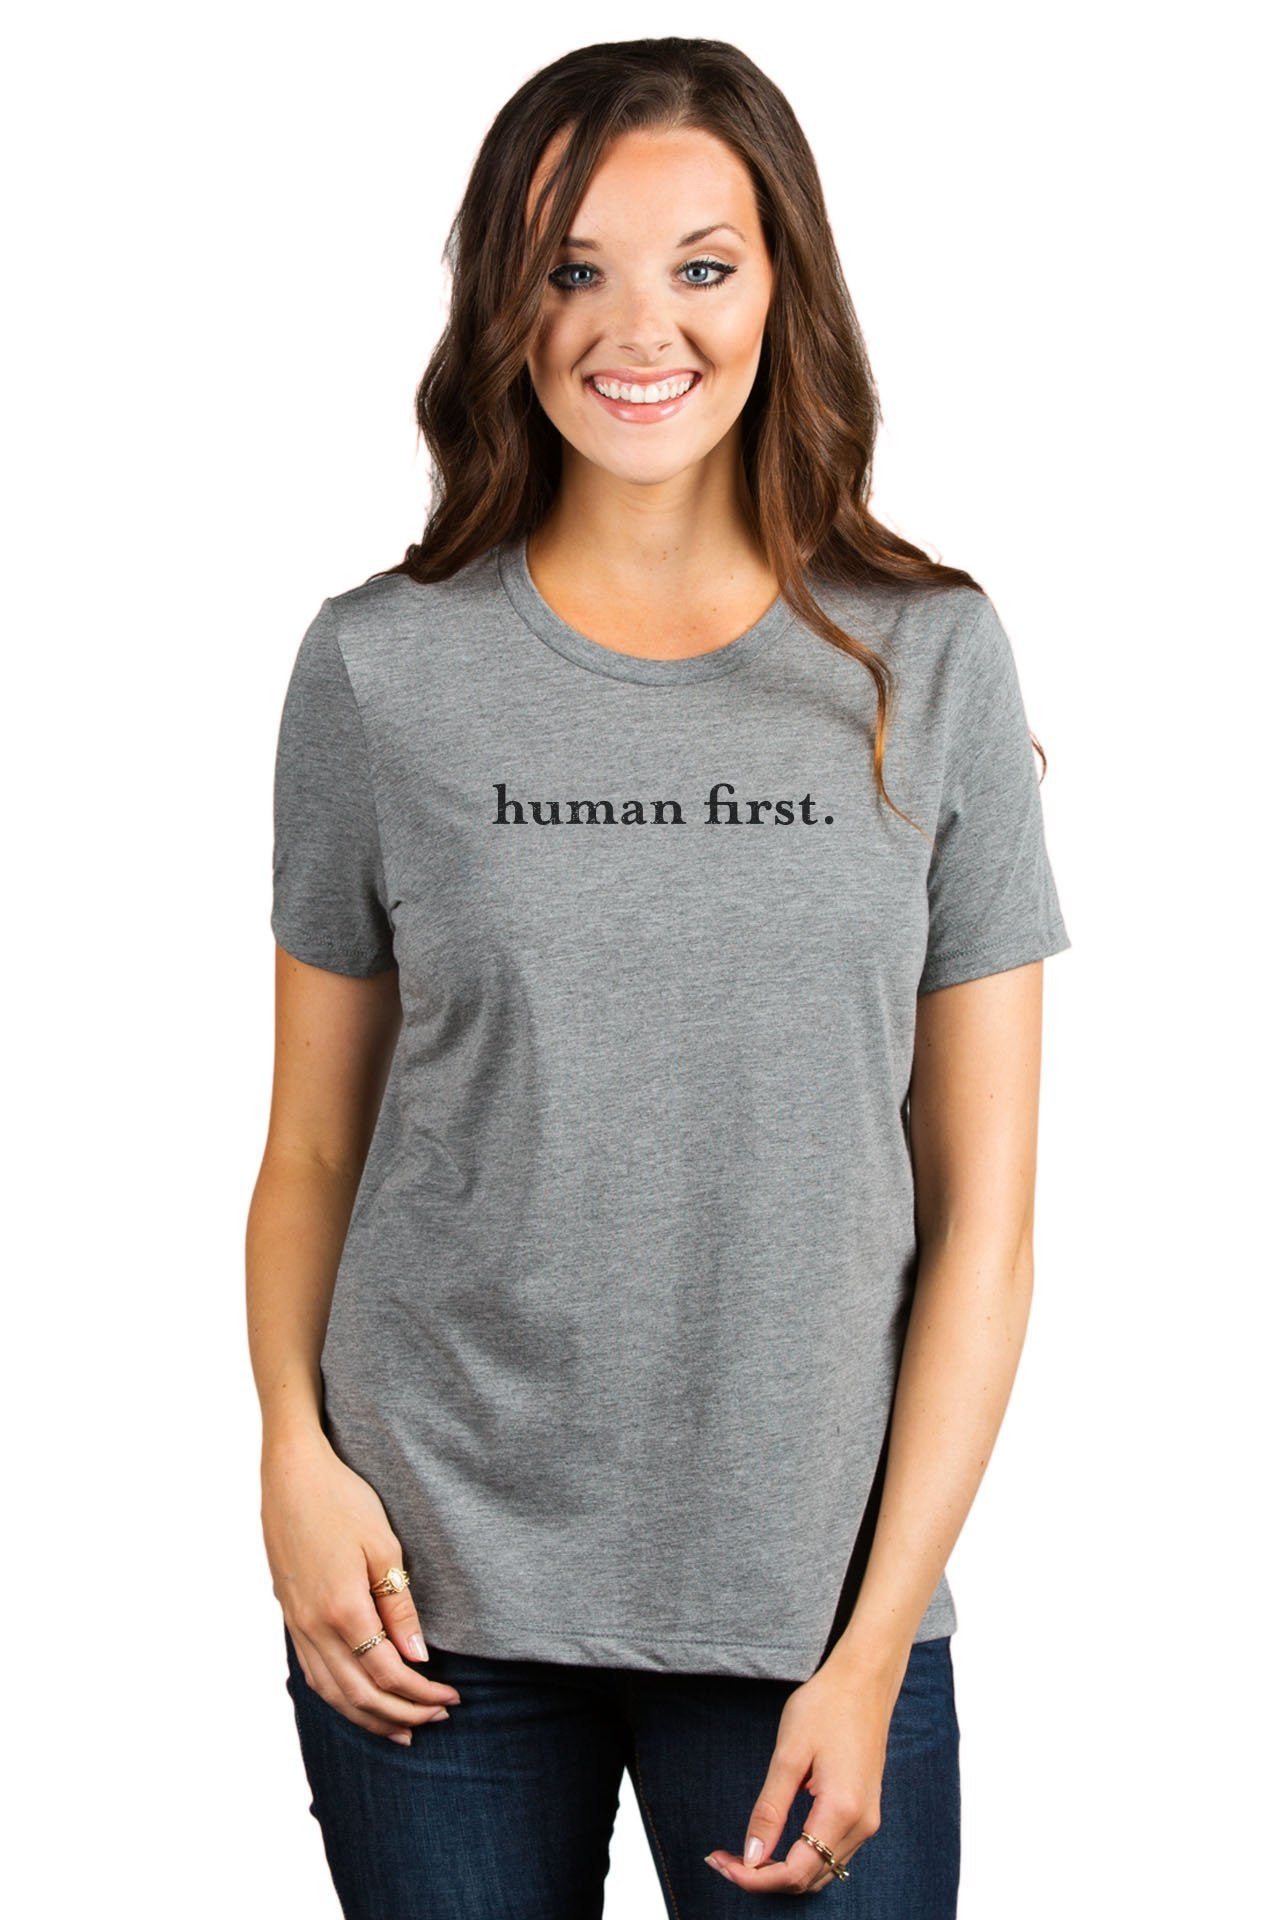 Human First Women's Relaxed Crewneck T-Shirt Top Tee Heather Grey